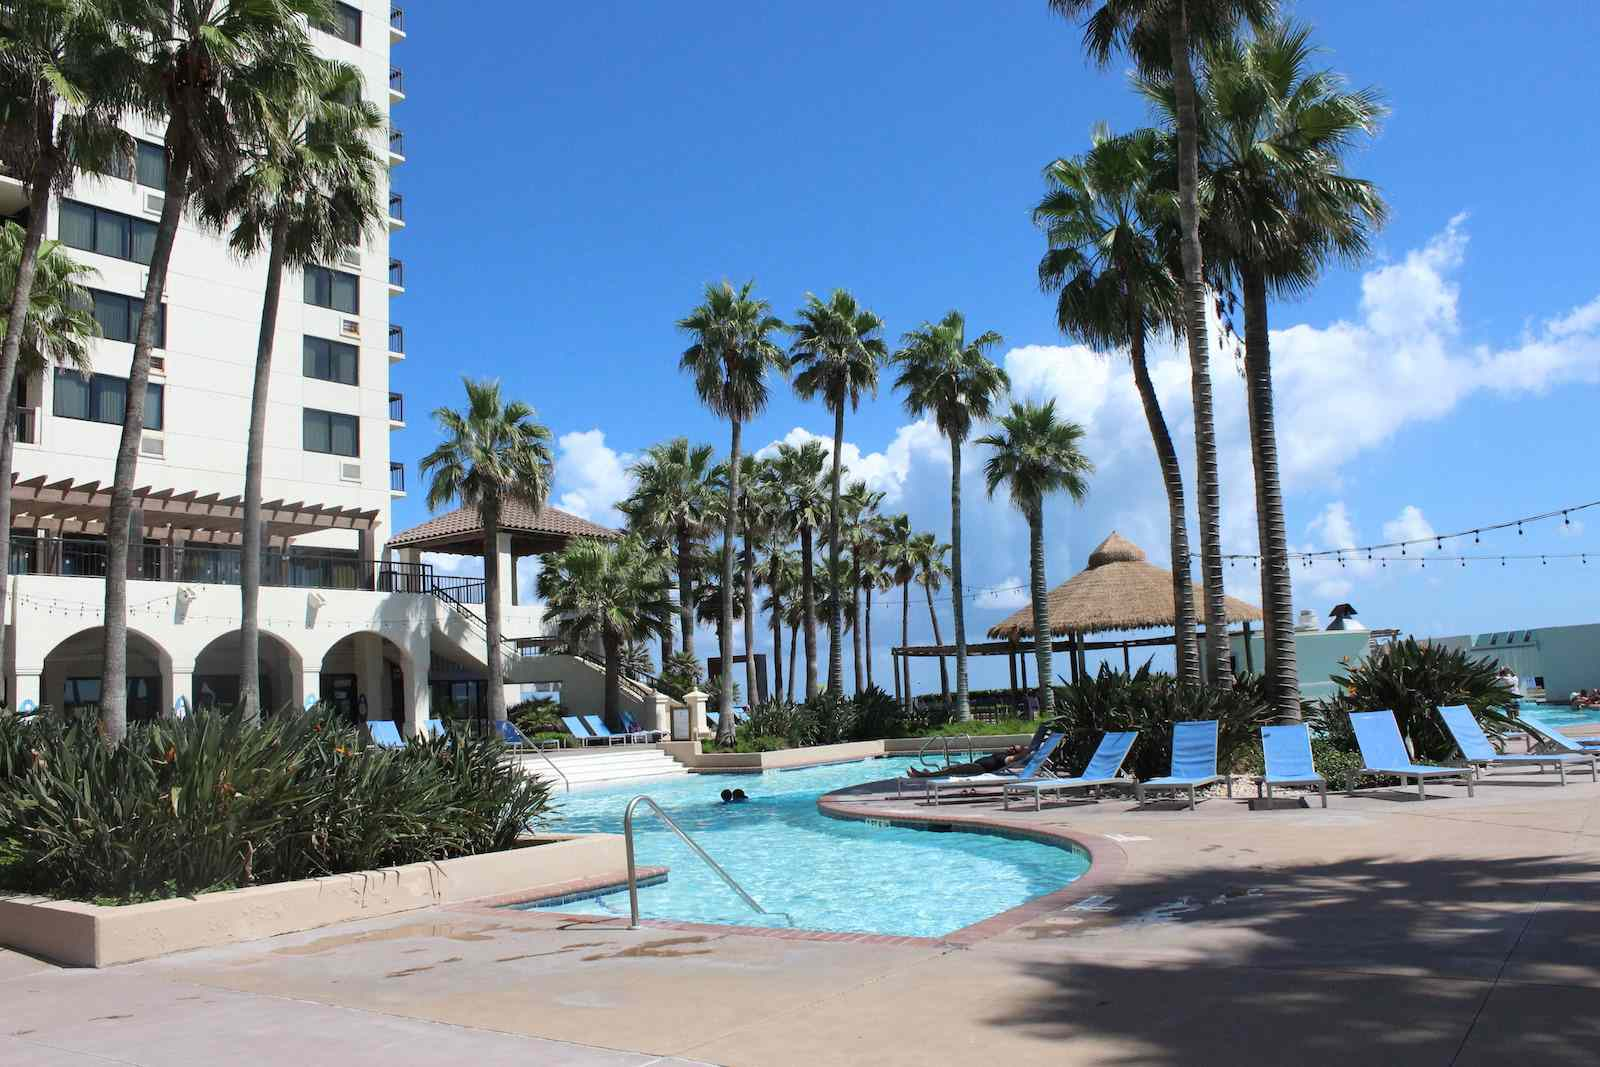 The inviting pool and palm tree-lined courtyard at the Pearl at